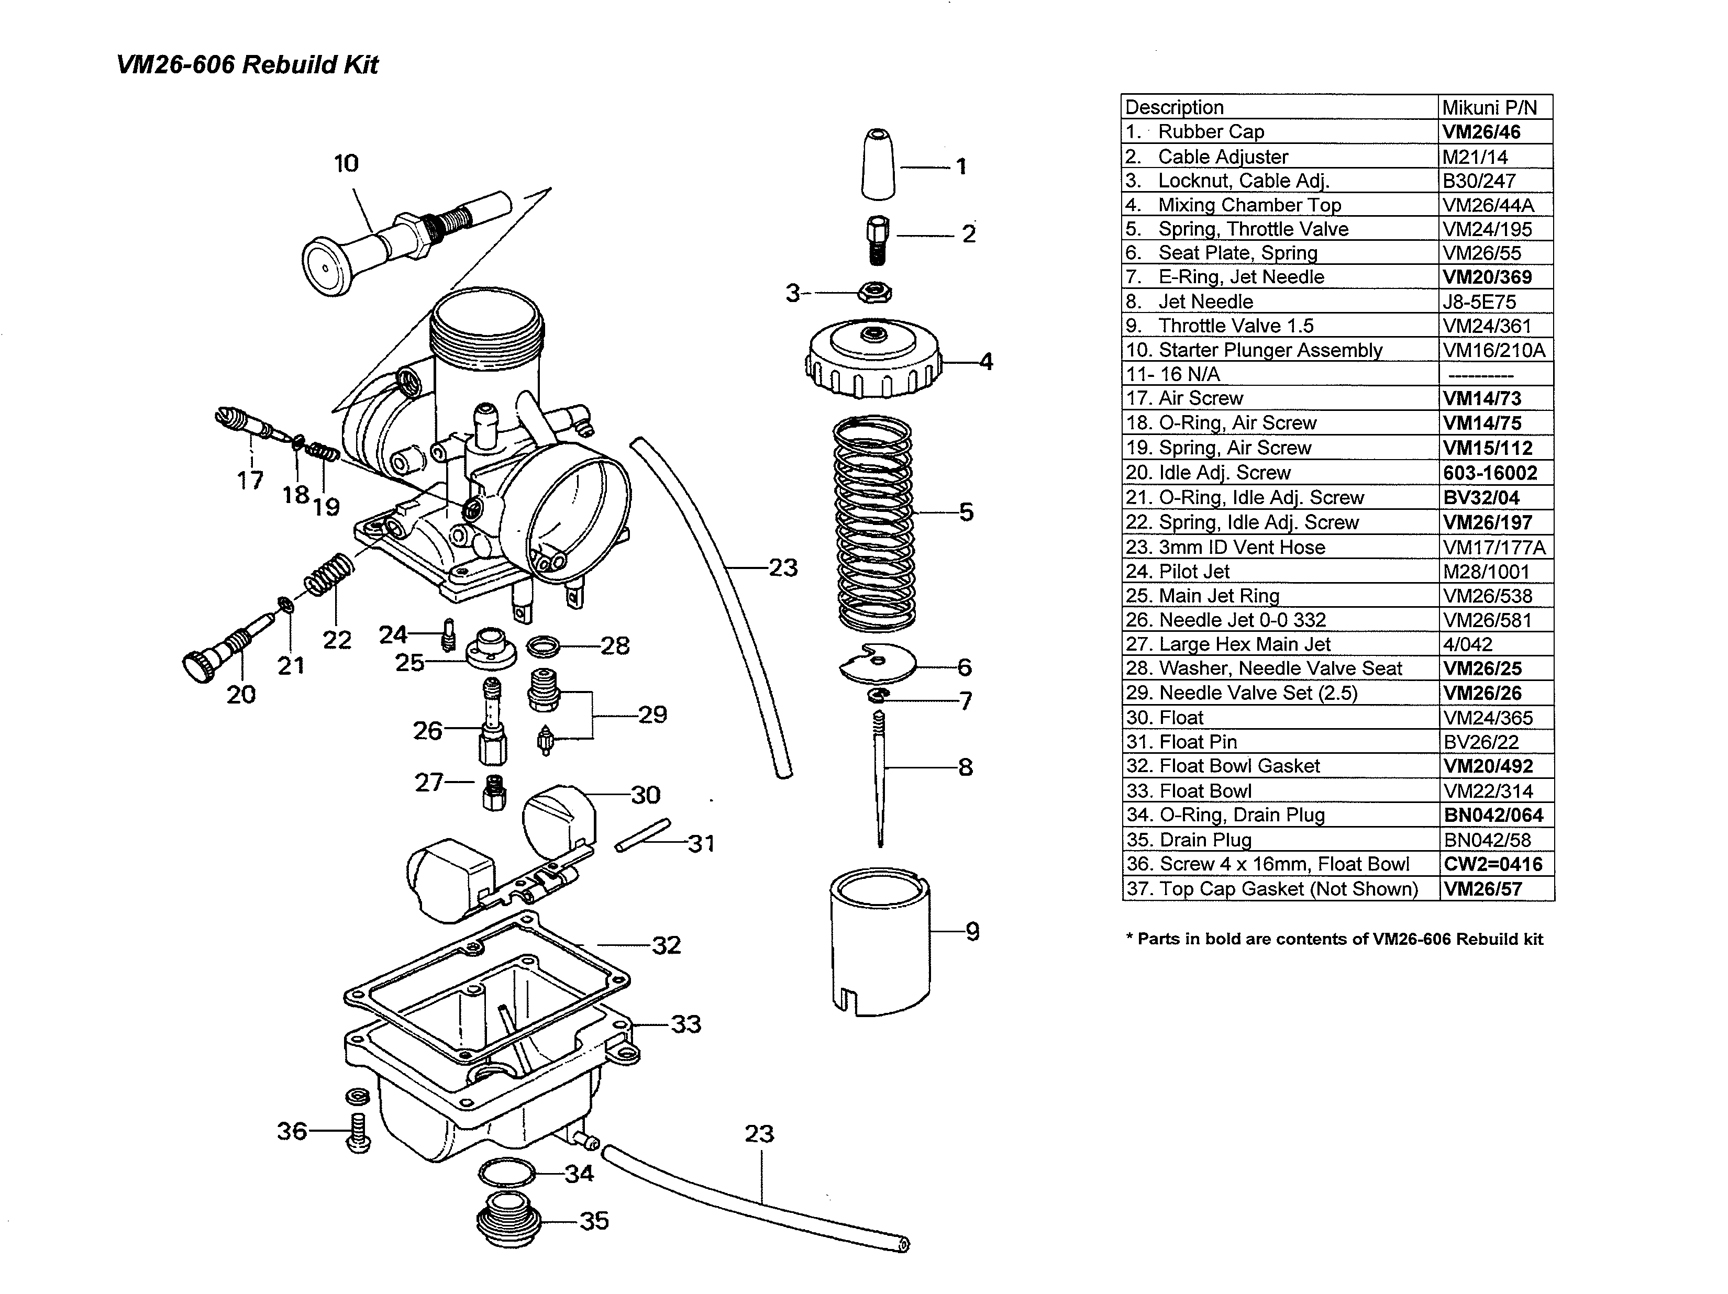 buyang motorcycle wiring diagram with Suzuki Mikuni Carburetor Diagram on Suzuki Mikuni Carburetor Diagram furthermore Charging system additionally Atv 109 Wiring Diagram also 2004 Arctic Cat 90 Wiring Diagram also Chinese Atv Wiring Diagrams.